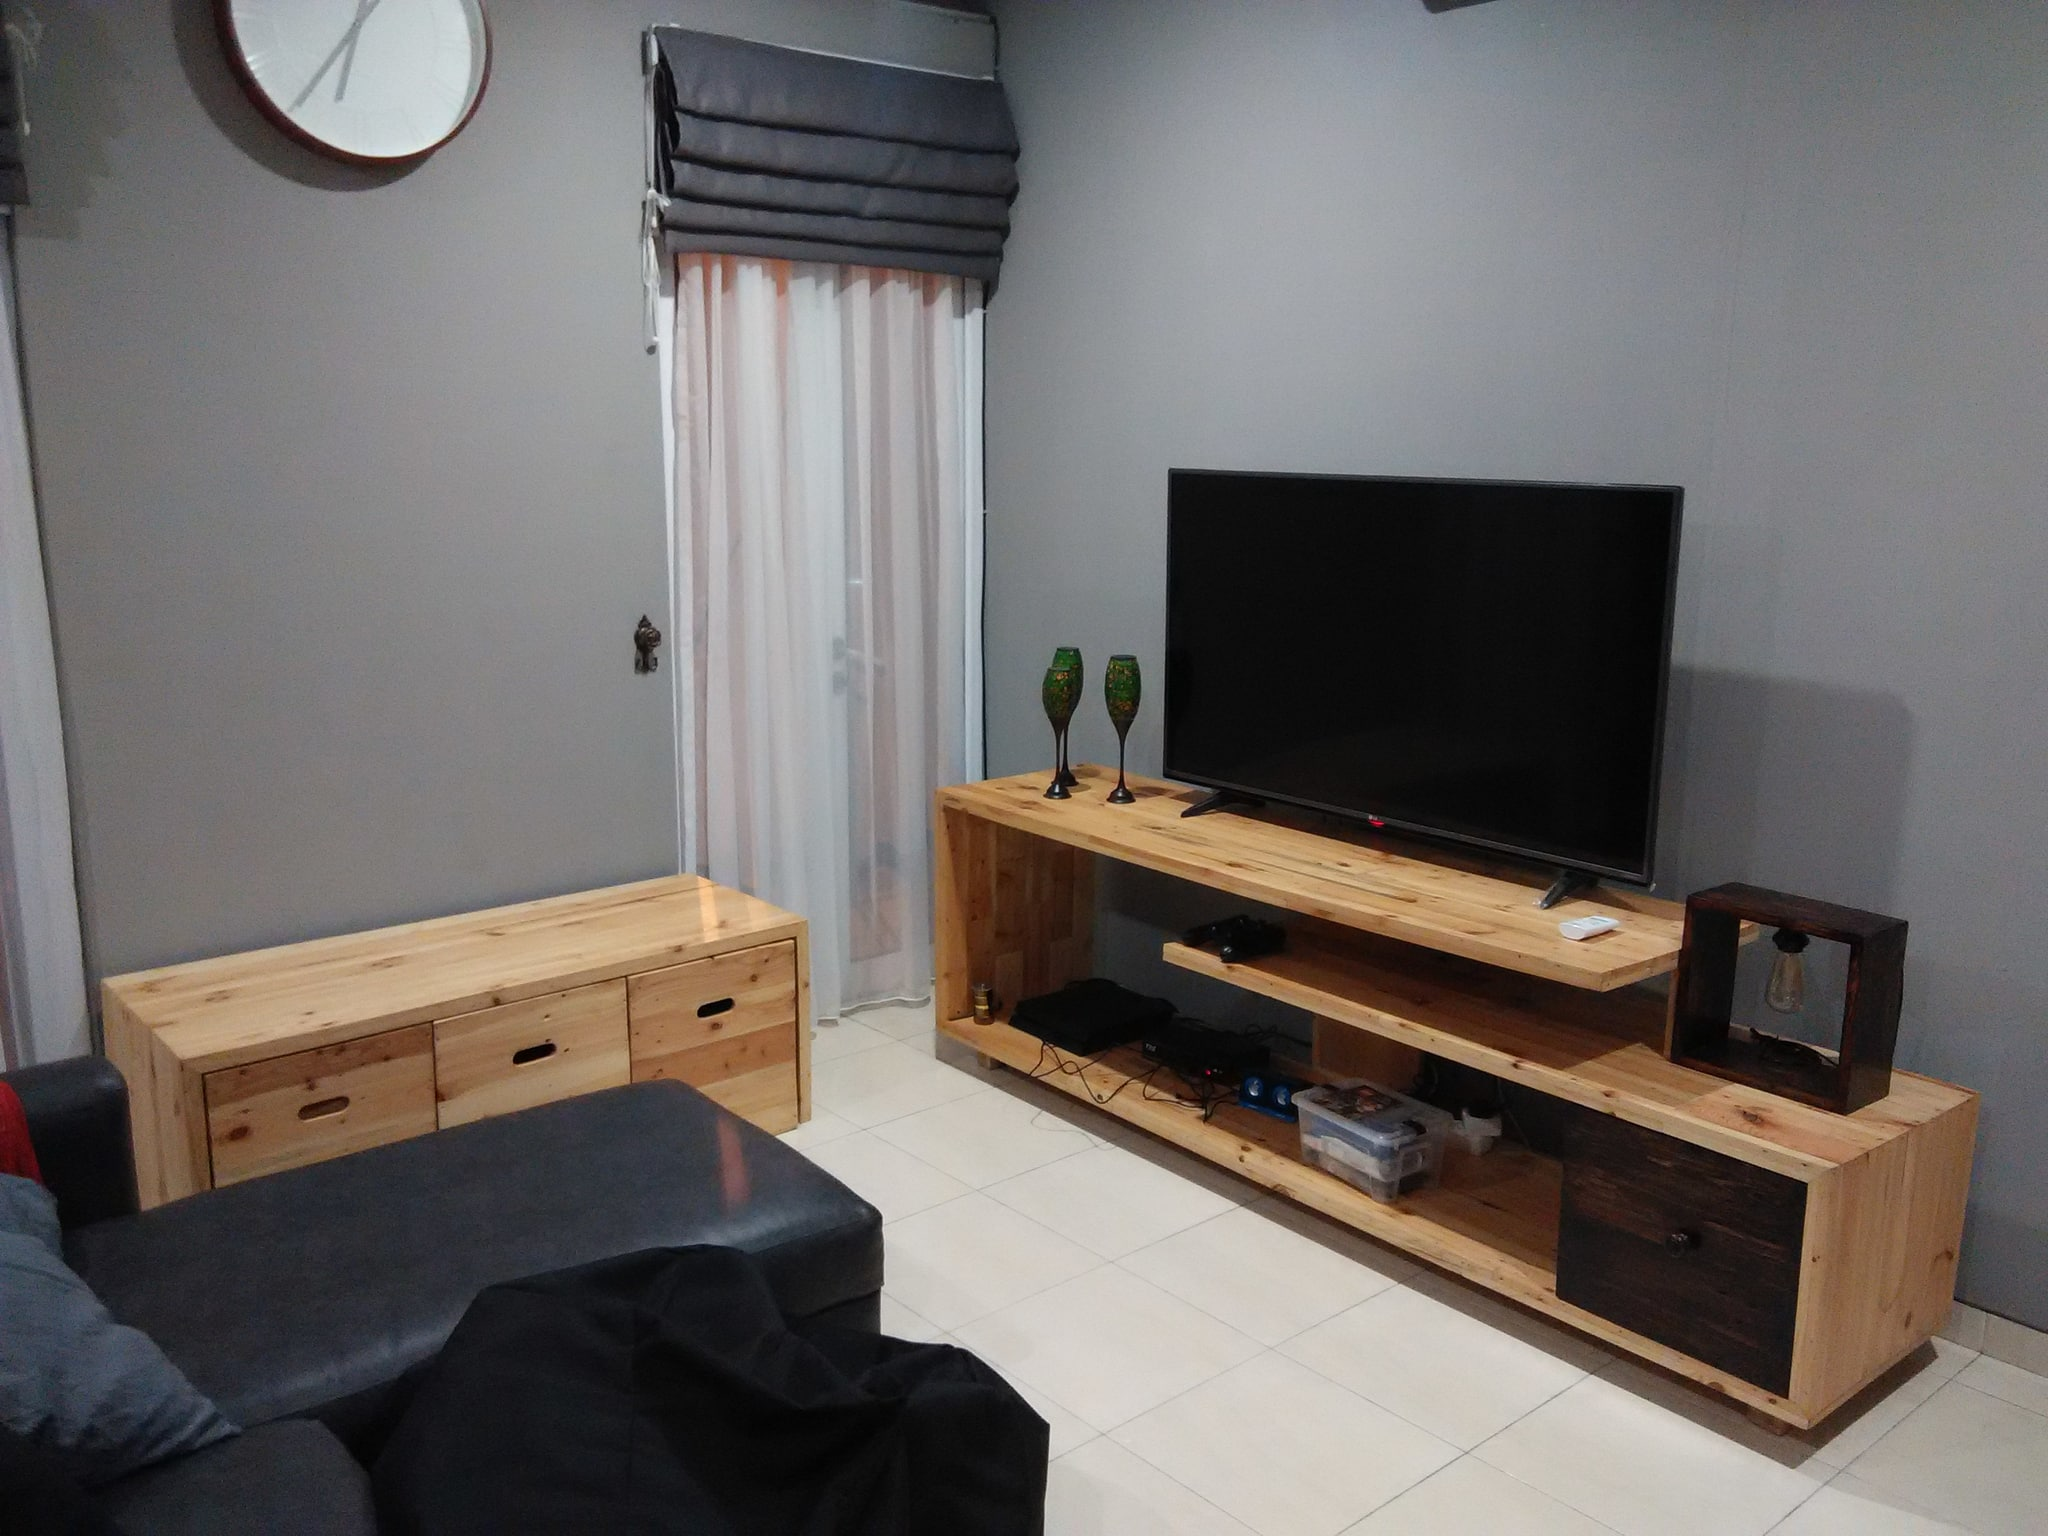 Jual meja rak tv kayu pallet bisa custom Cloud Bursh